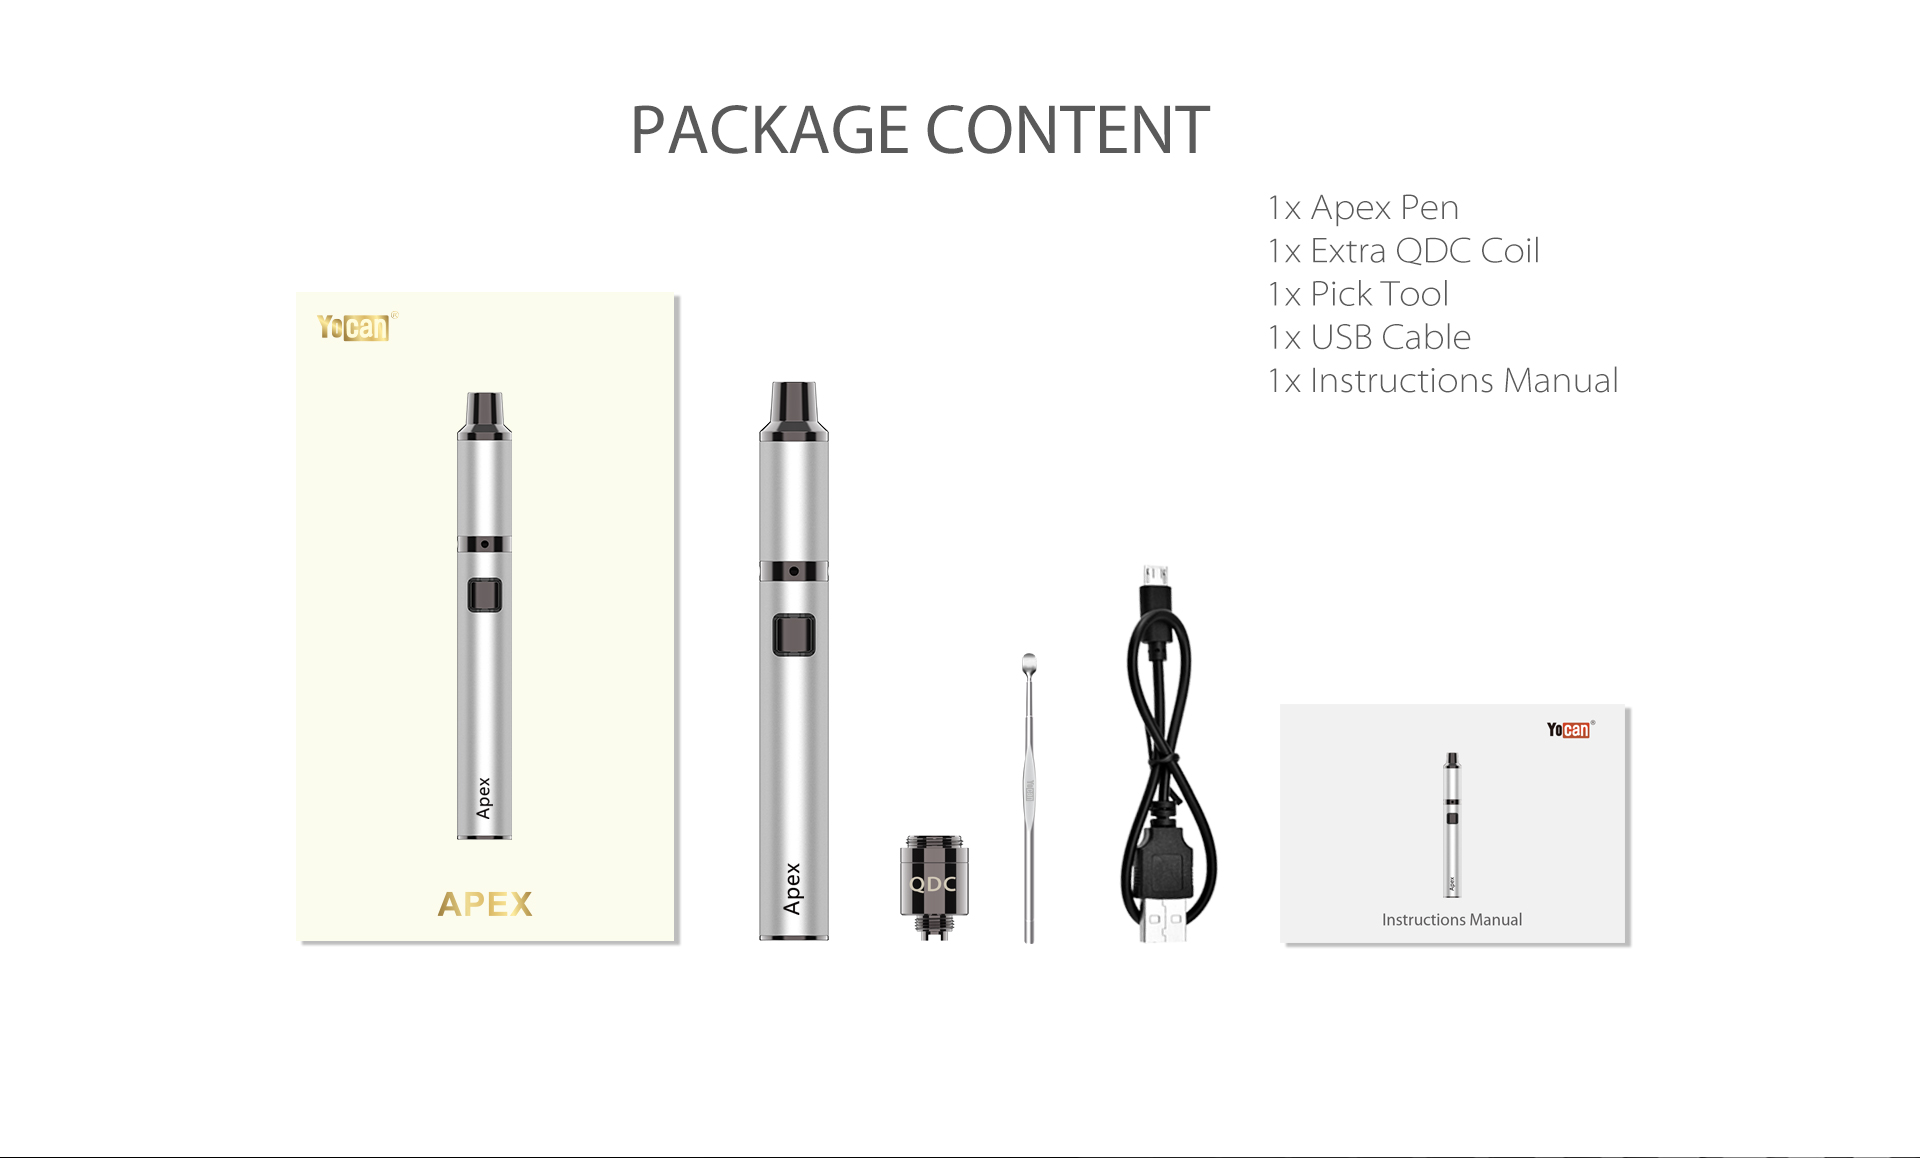 The package content of Yocan Apex concentrate vaporizer pen